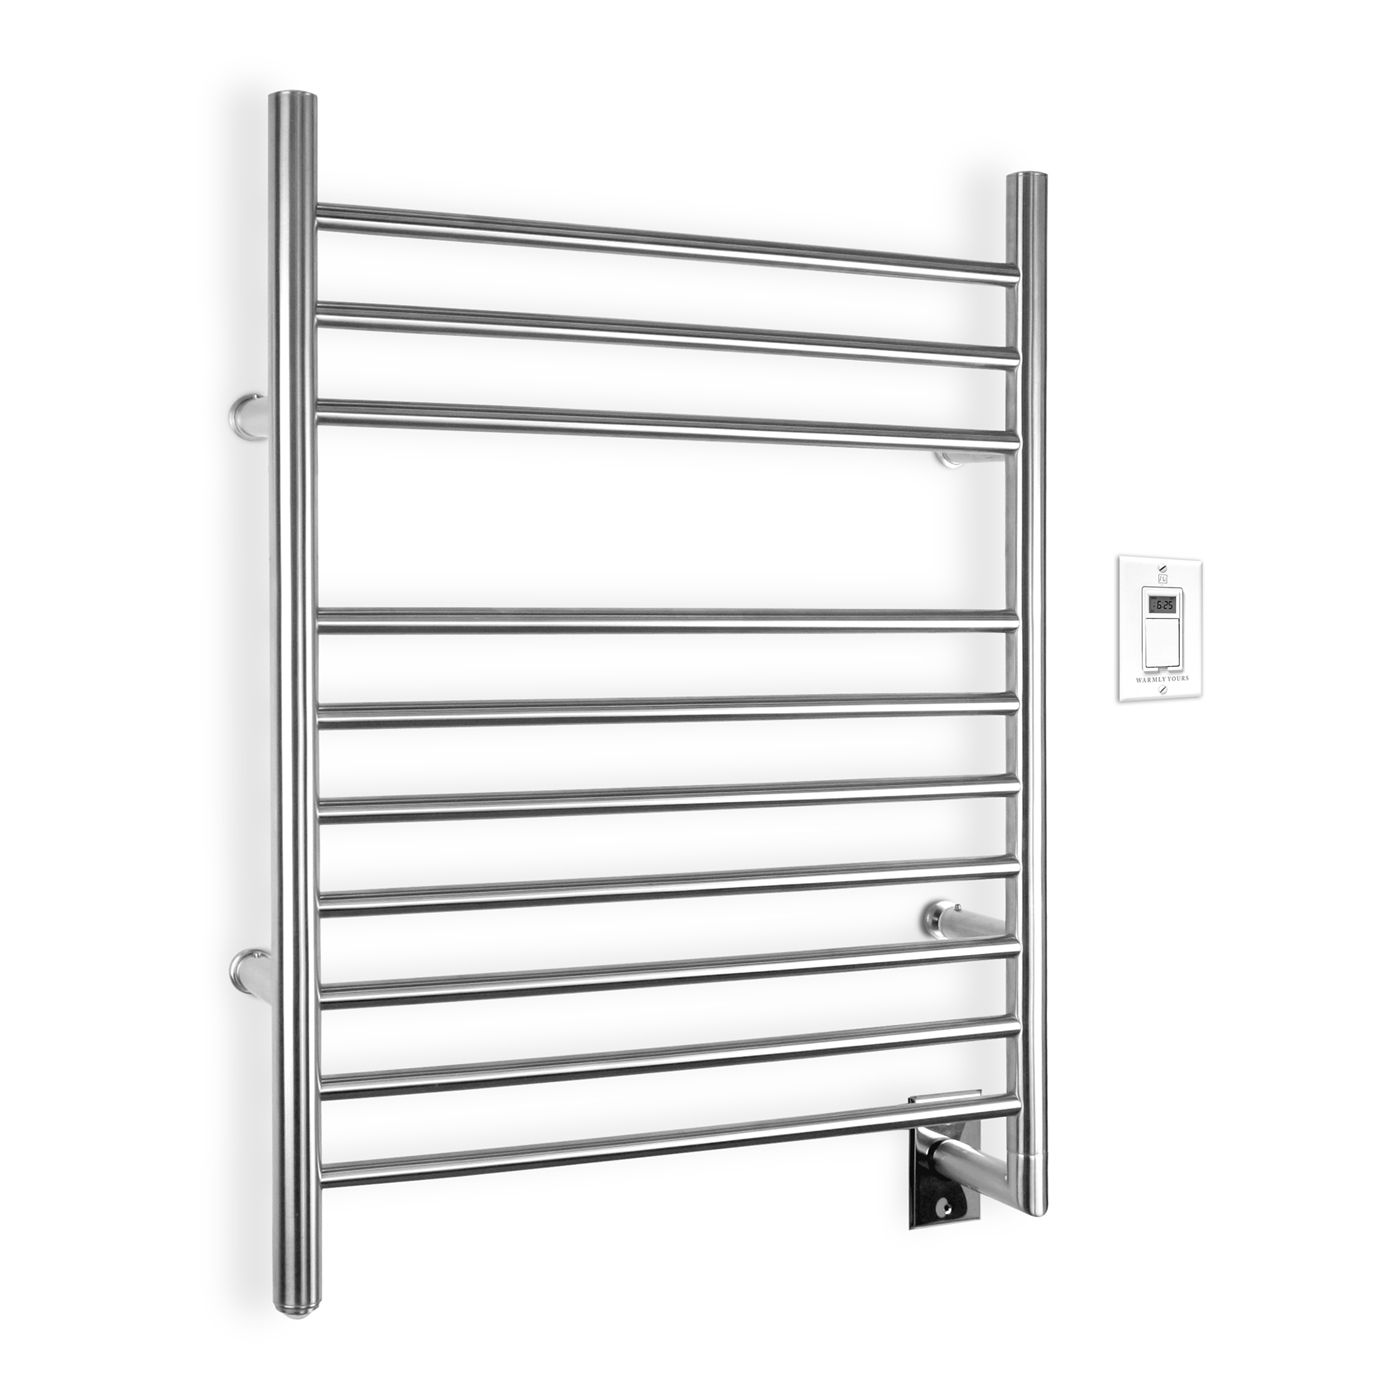 Shop WarmlyYours  TW-F10BS Infinity Towel Warmer at ATG Stores. Browse our towel warmers, all with free shipping and best price guaranteed.